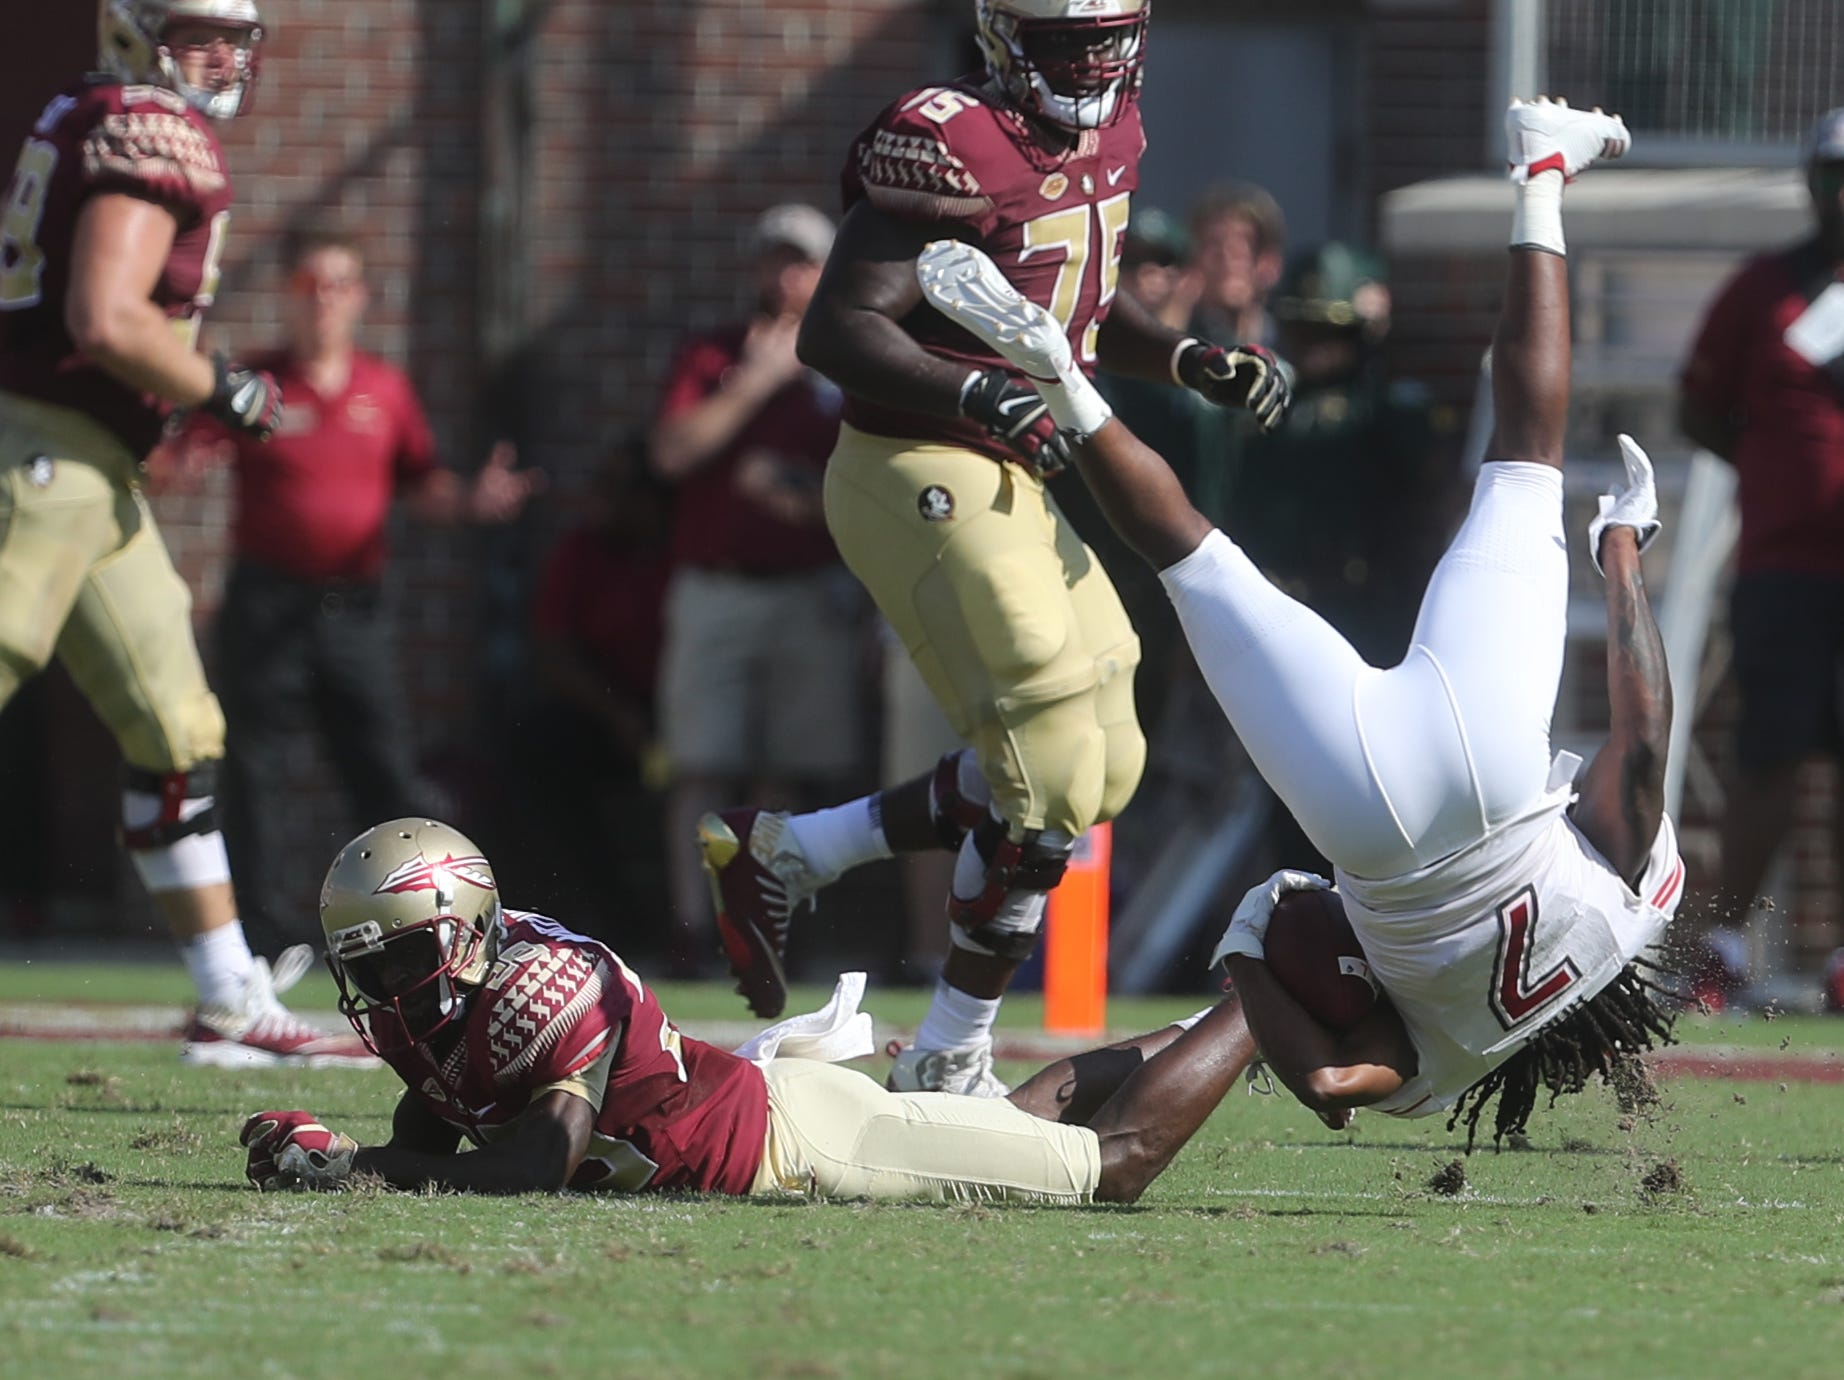 Northern Illinois Huskies cornerback Tifonte Hunt (7) flips after taking a hit from a Seminole during a game between the Florida State University Seminoles and the Northern Illinois University Huskies at Doak S. Campbell Stadium in Tallahassee, Fla. Saturday, September 22, 2018.